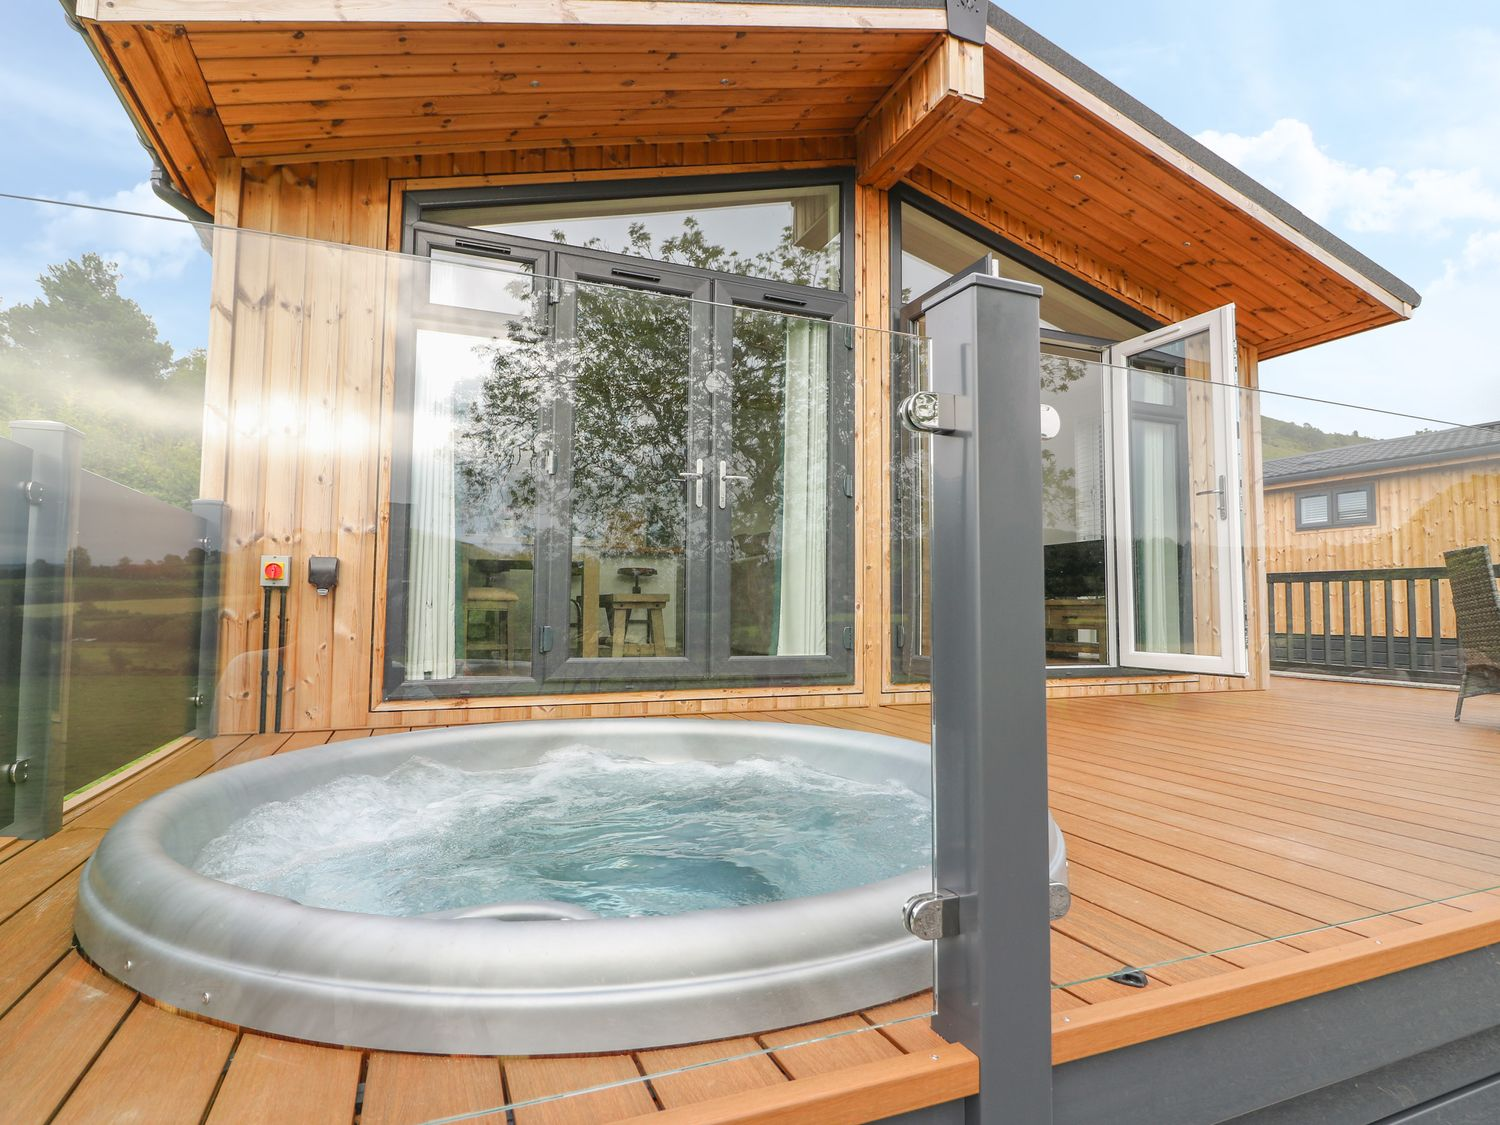 Wales: Luxury Lodge with Hot Tub